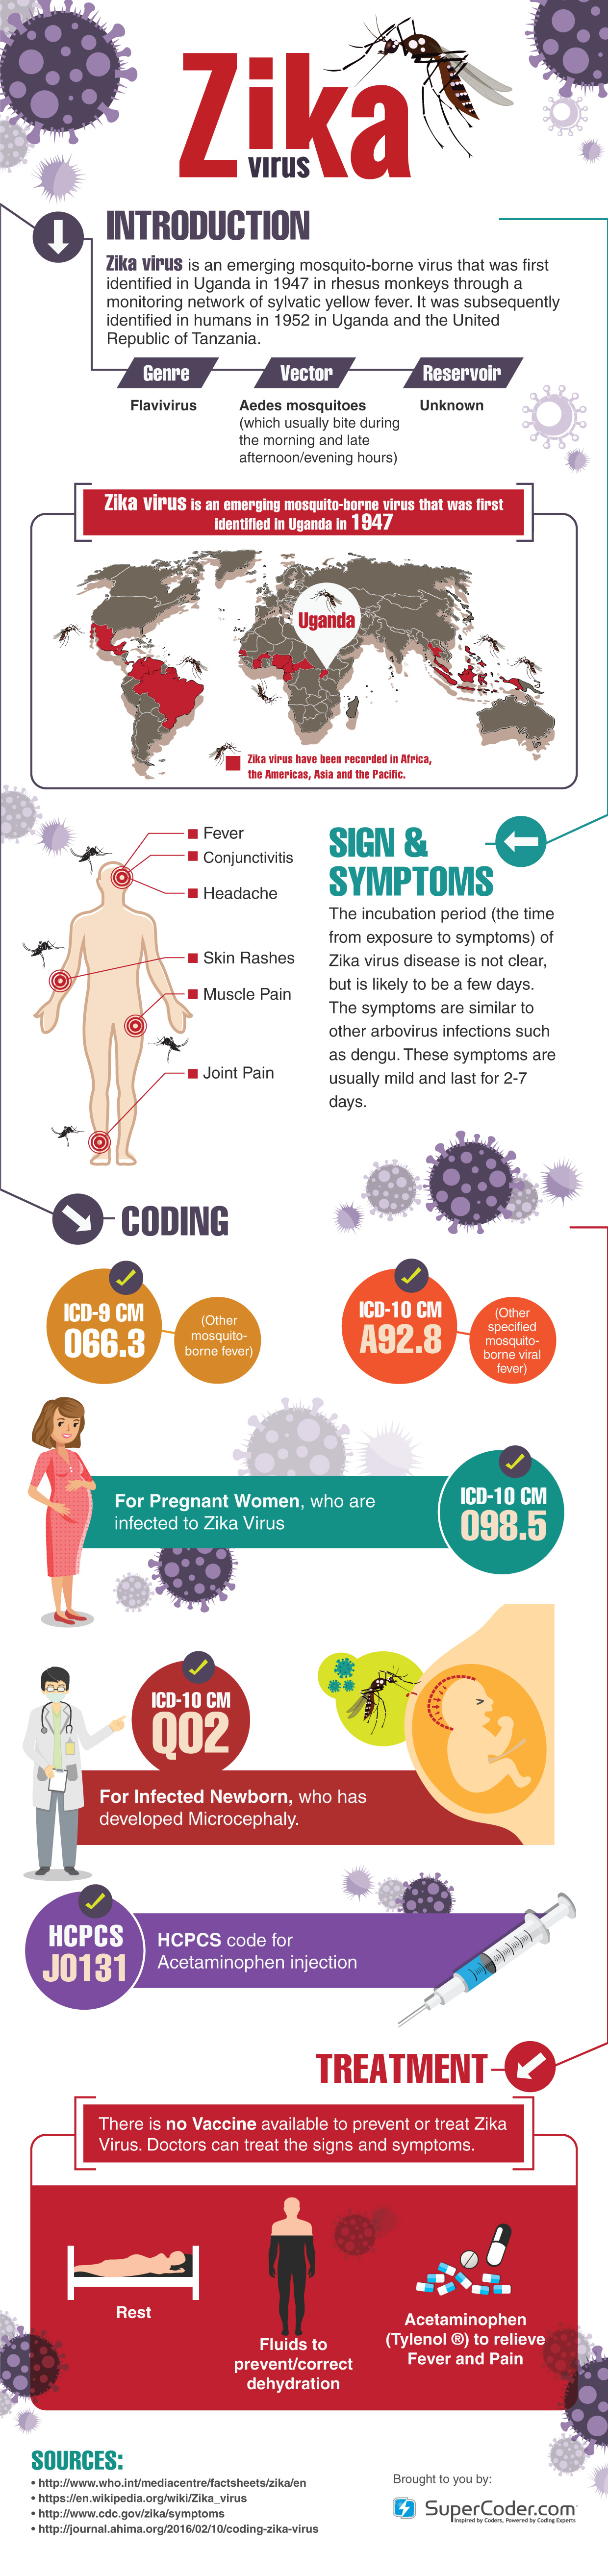 Pin On Icd 10 Codes Implementation